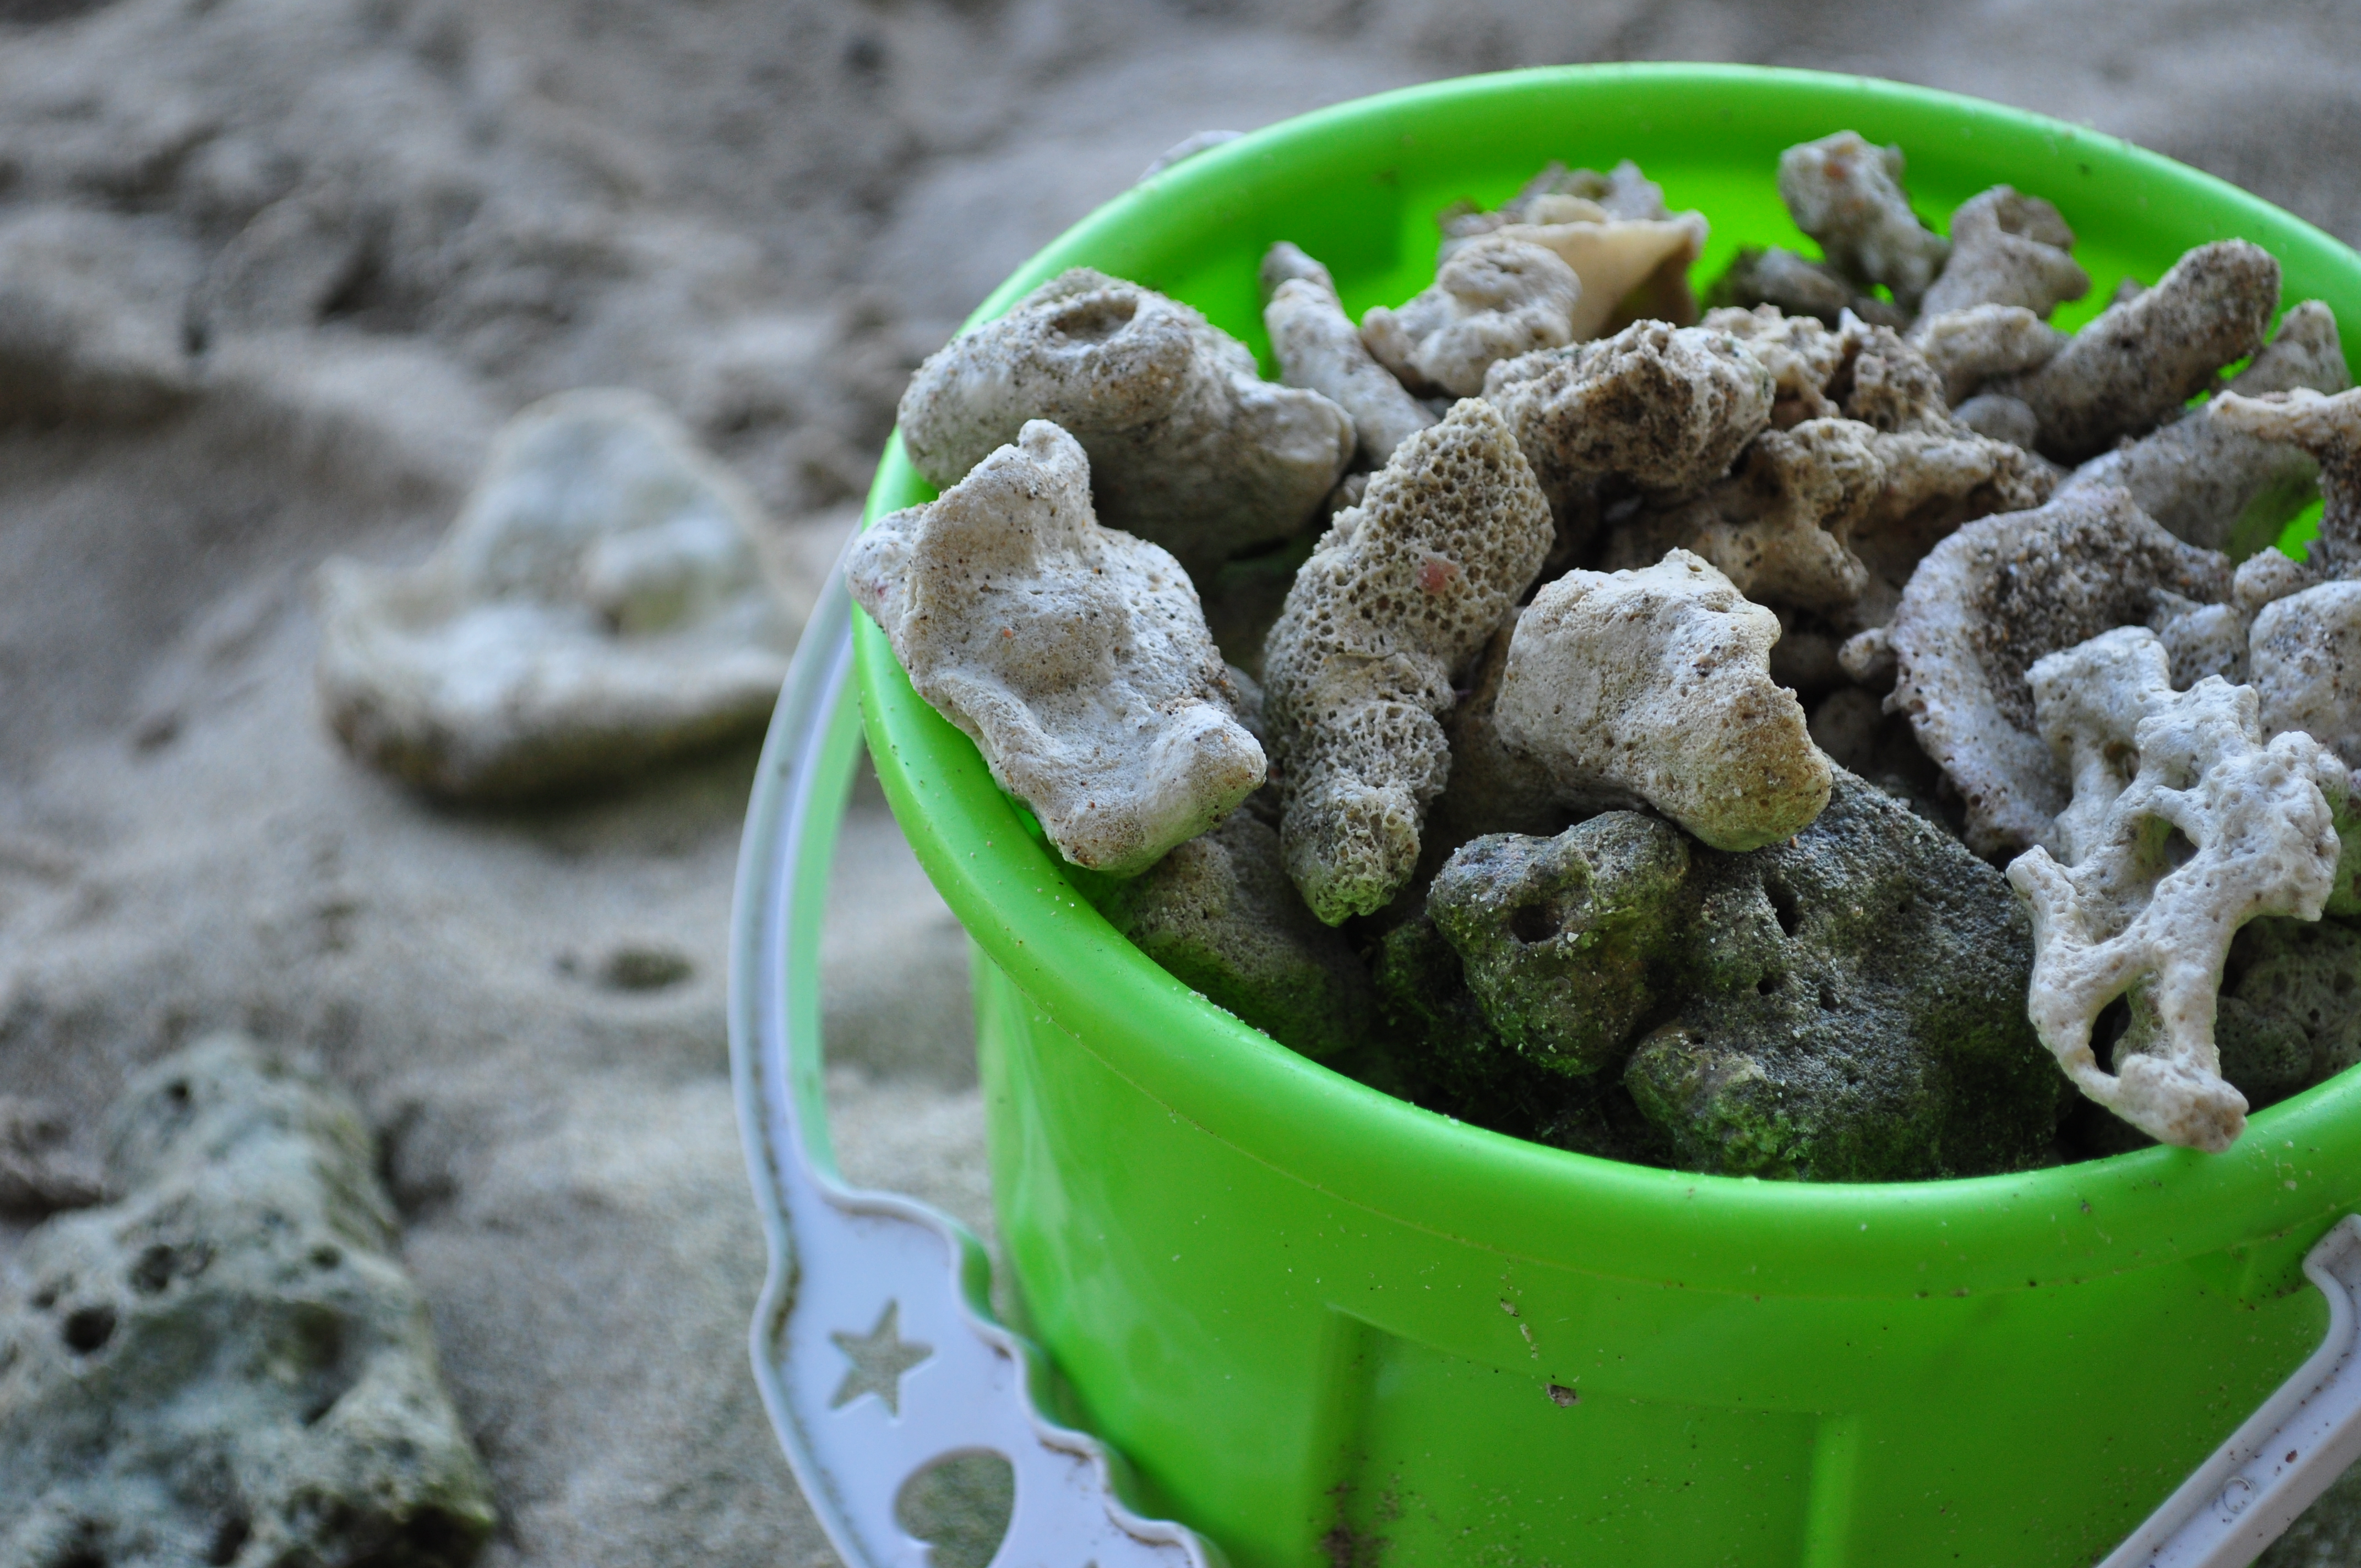 Corals in a toy pail, Beach, Collect, Corals, Gather, HQ Photo